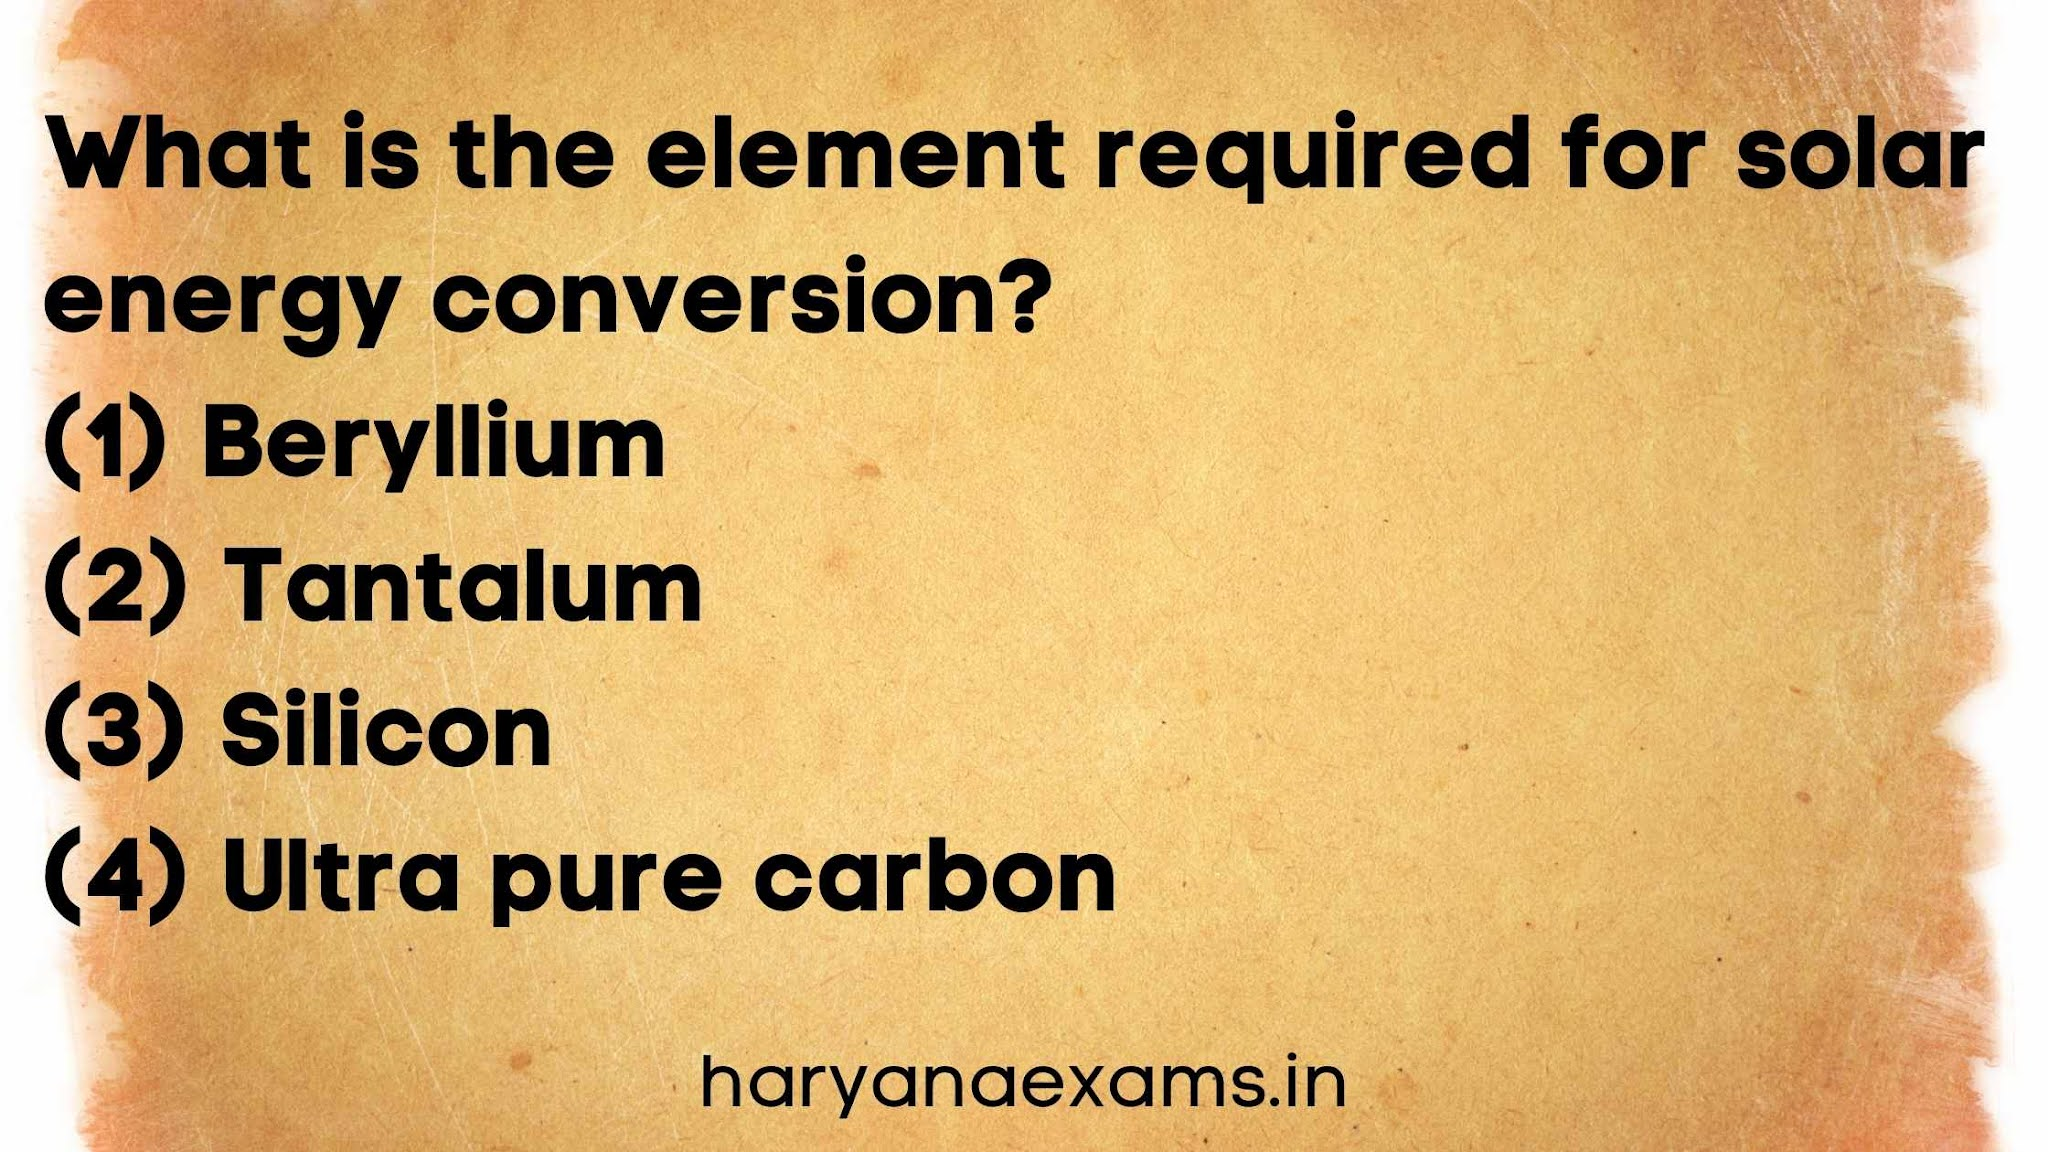 What is the element required for solar energy conversion?   (1) Beryllium   (2) Tantalum   (3) Silicon   (4) Ultra pure carbon